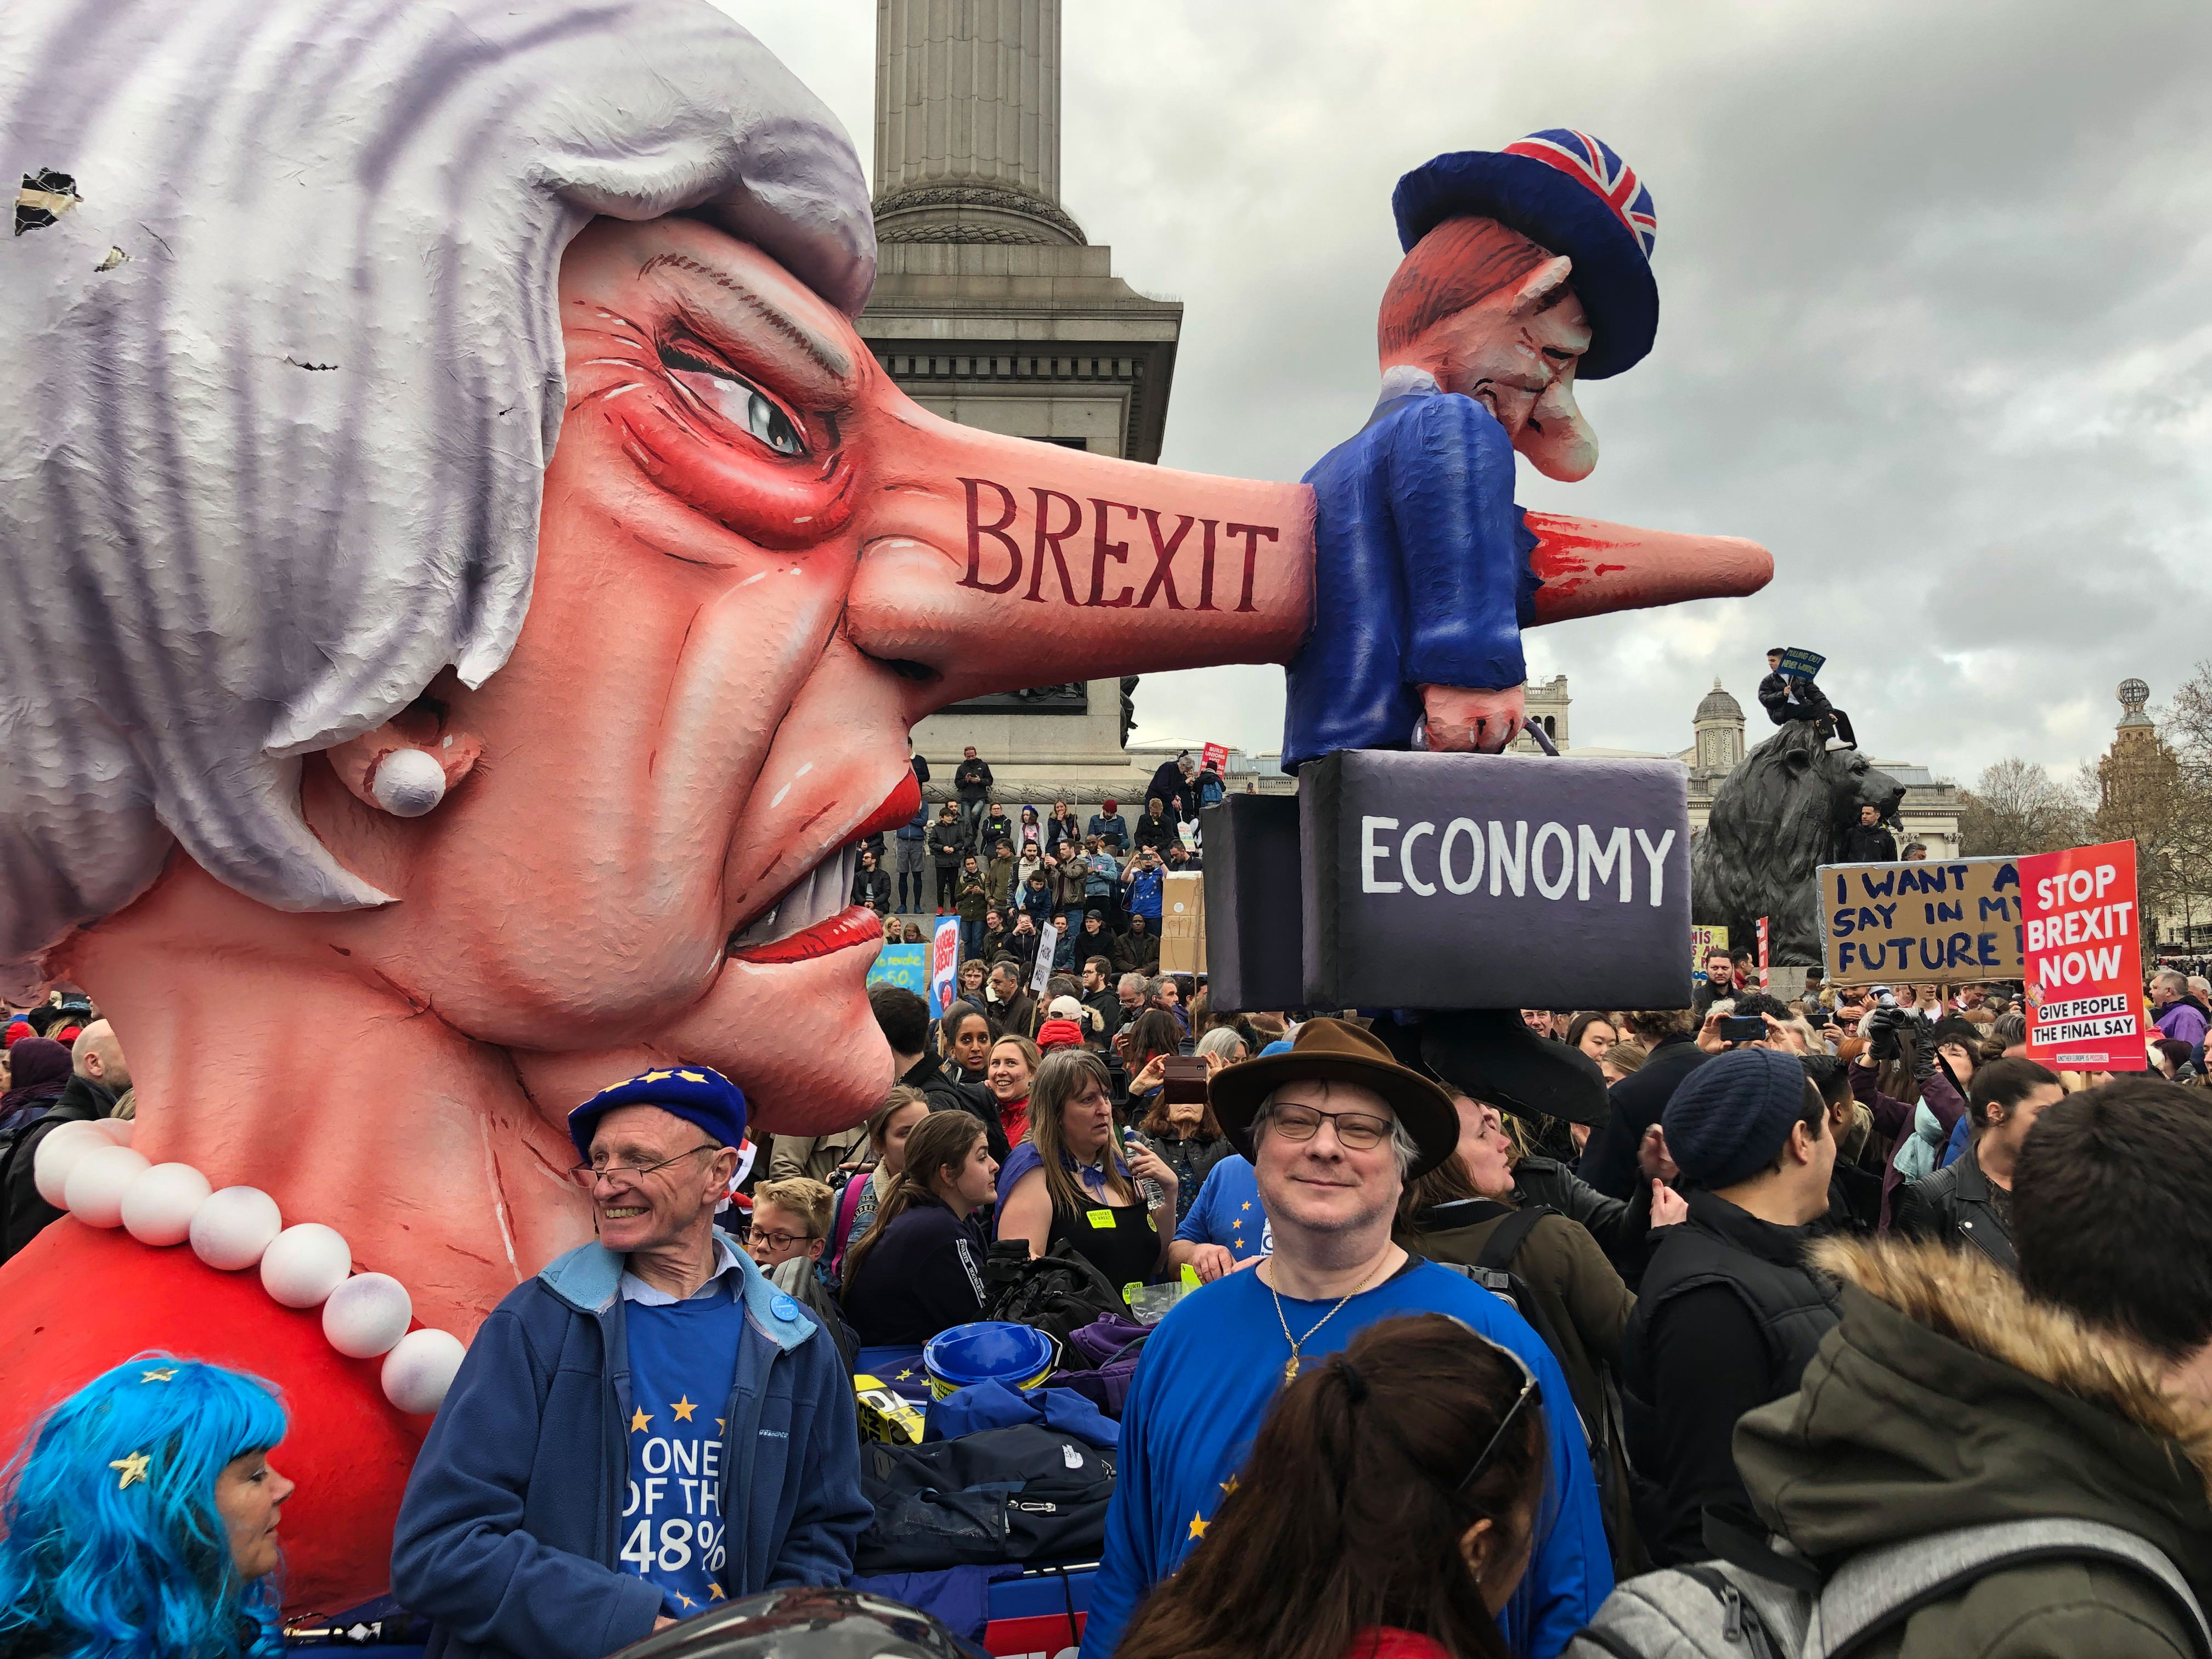 Chris Bovey posing with Theresa May sculpture made by Jacques Tilly in Trafalgar Square at the anti-Brexit protest, London, March 24 2019.